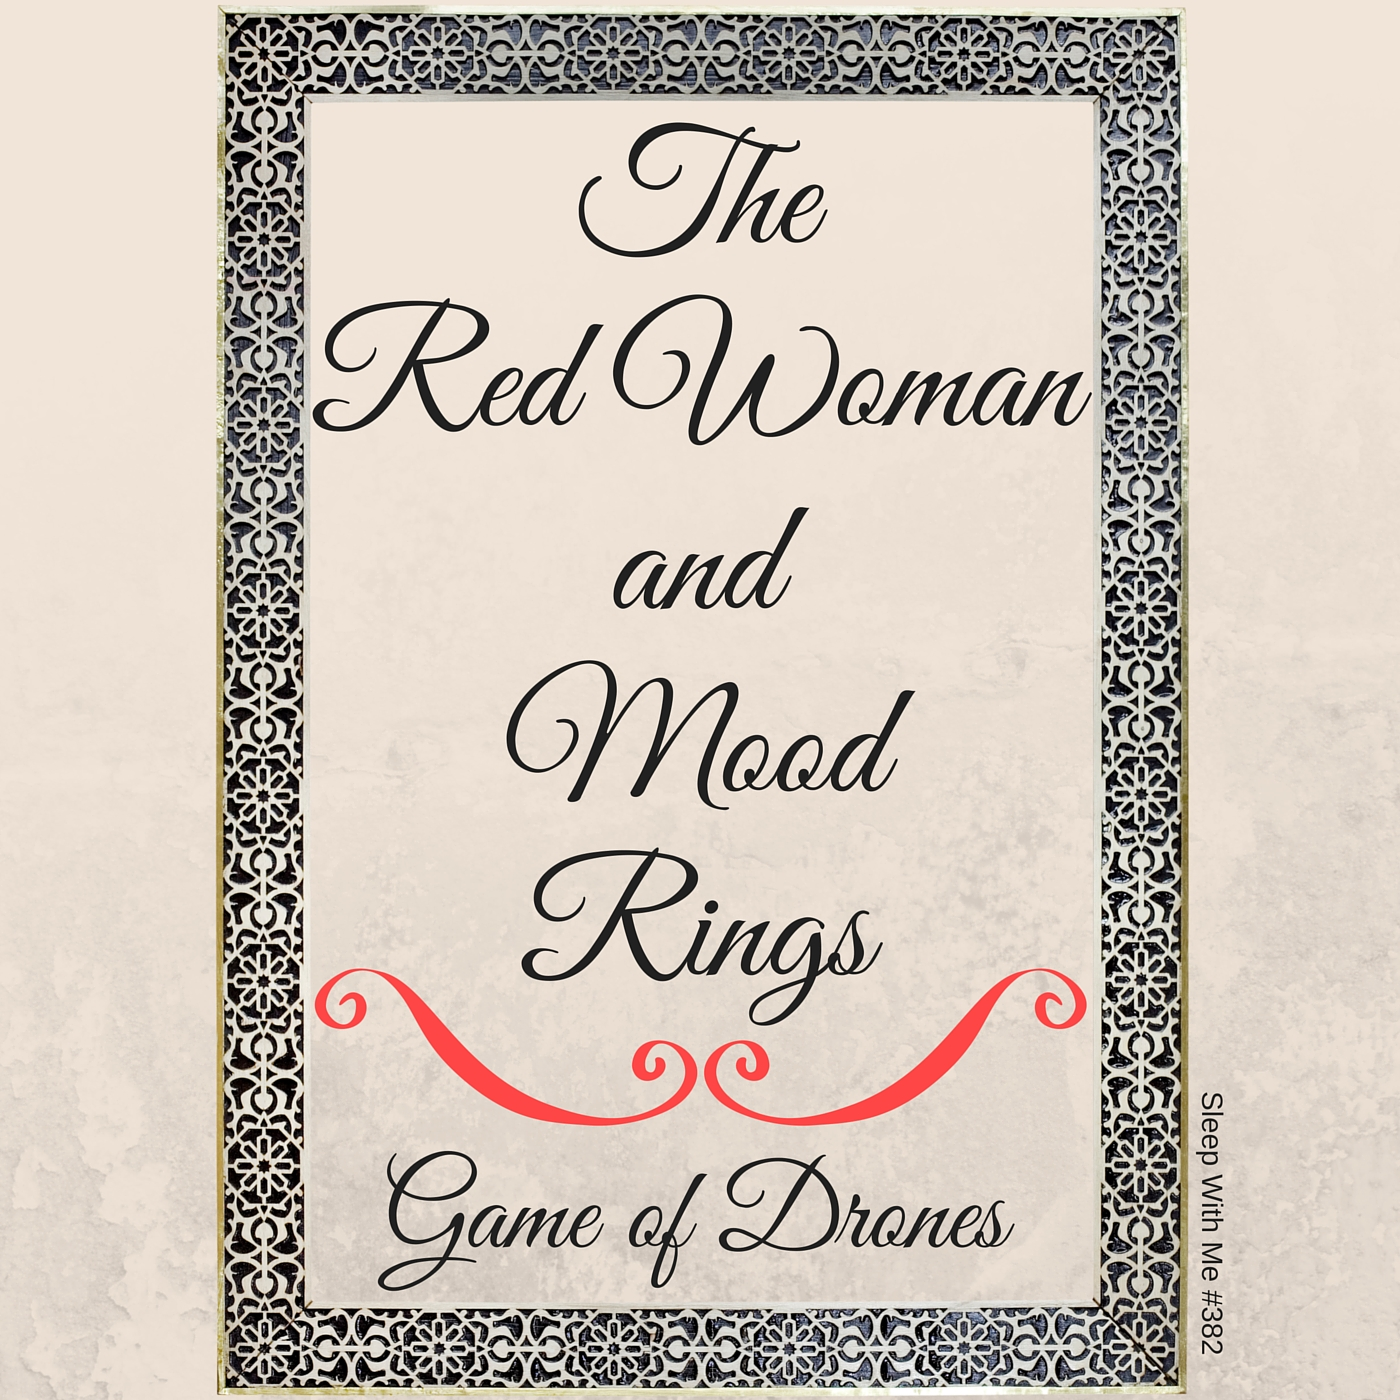 Red Woman and Mood Rings | Game Of Drones Season 6 Opener | Sleep With Me #382